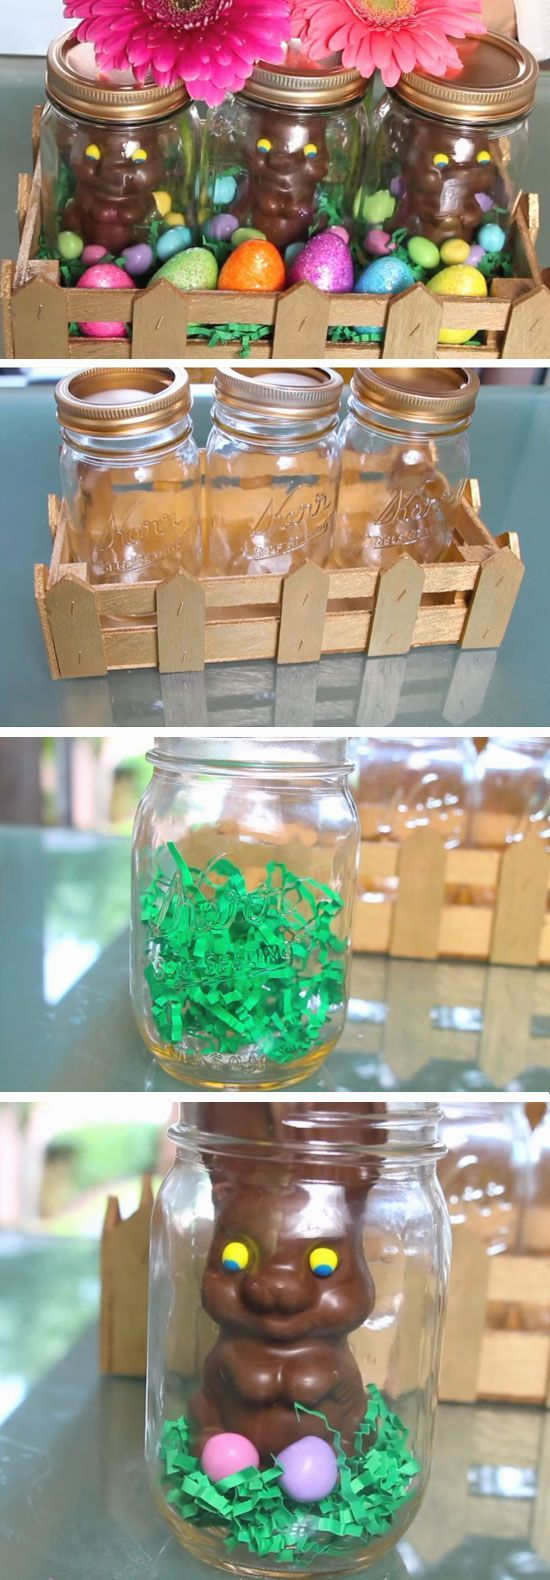 17 easy diy easter basket ideas for teens bunnies in a row easy diy easter basket ideas for teens easy gift ideas negle Images